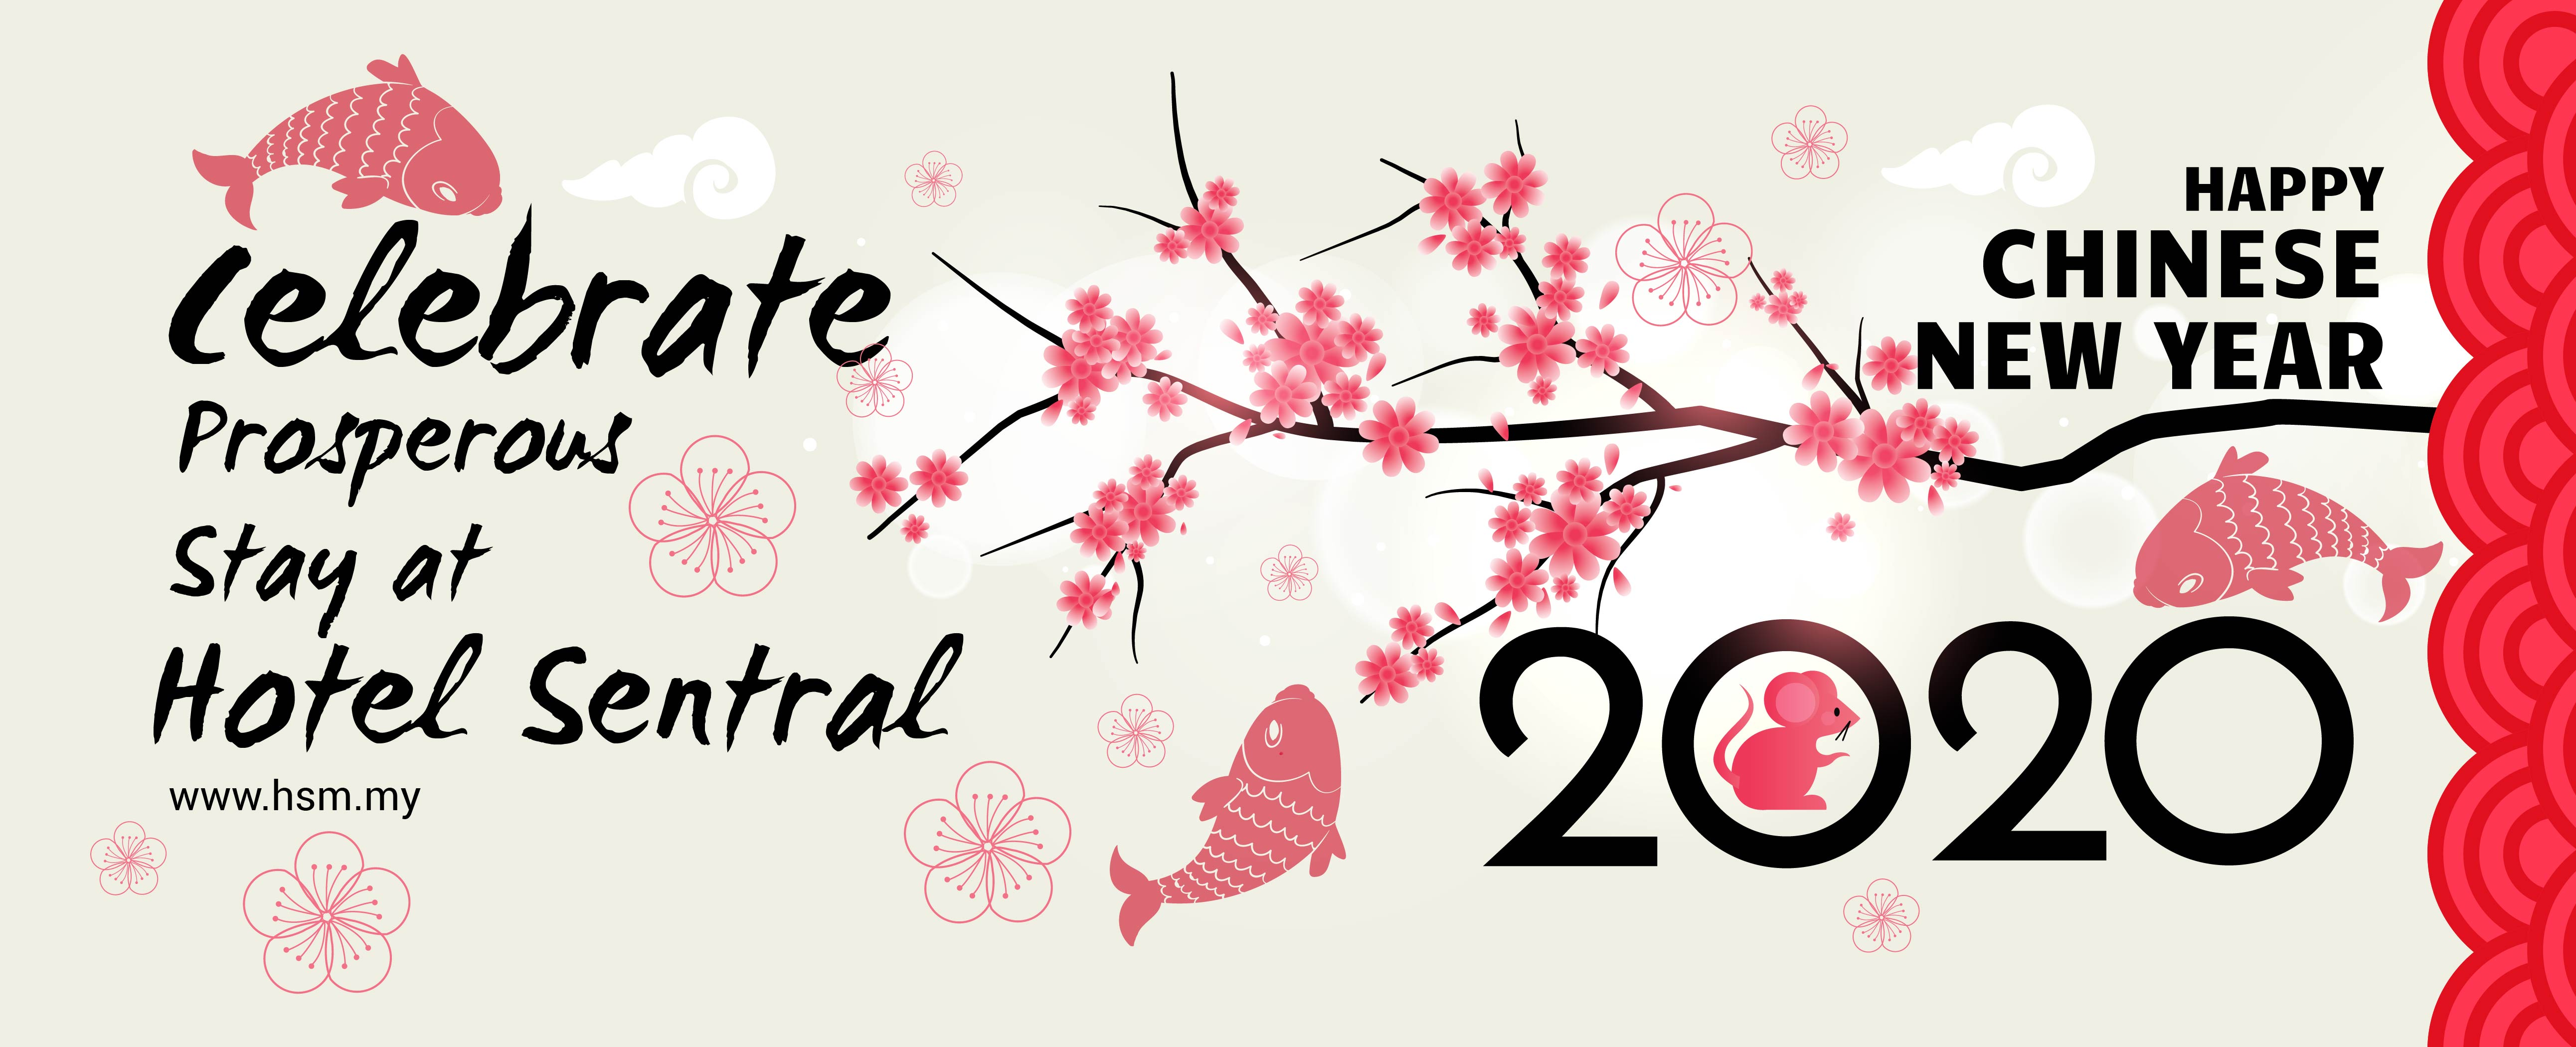 Hotel Sentral Chinese New Year Banner